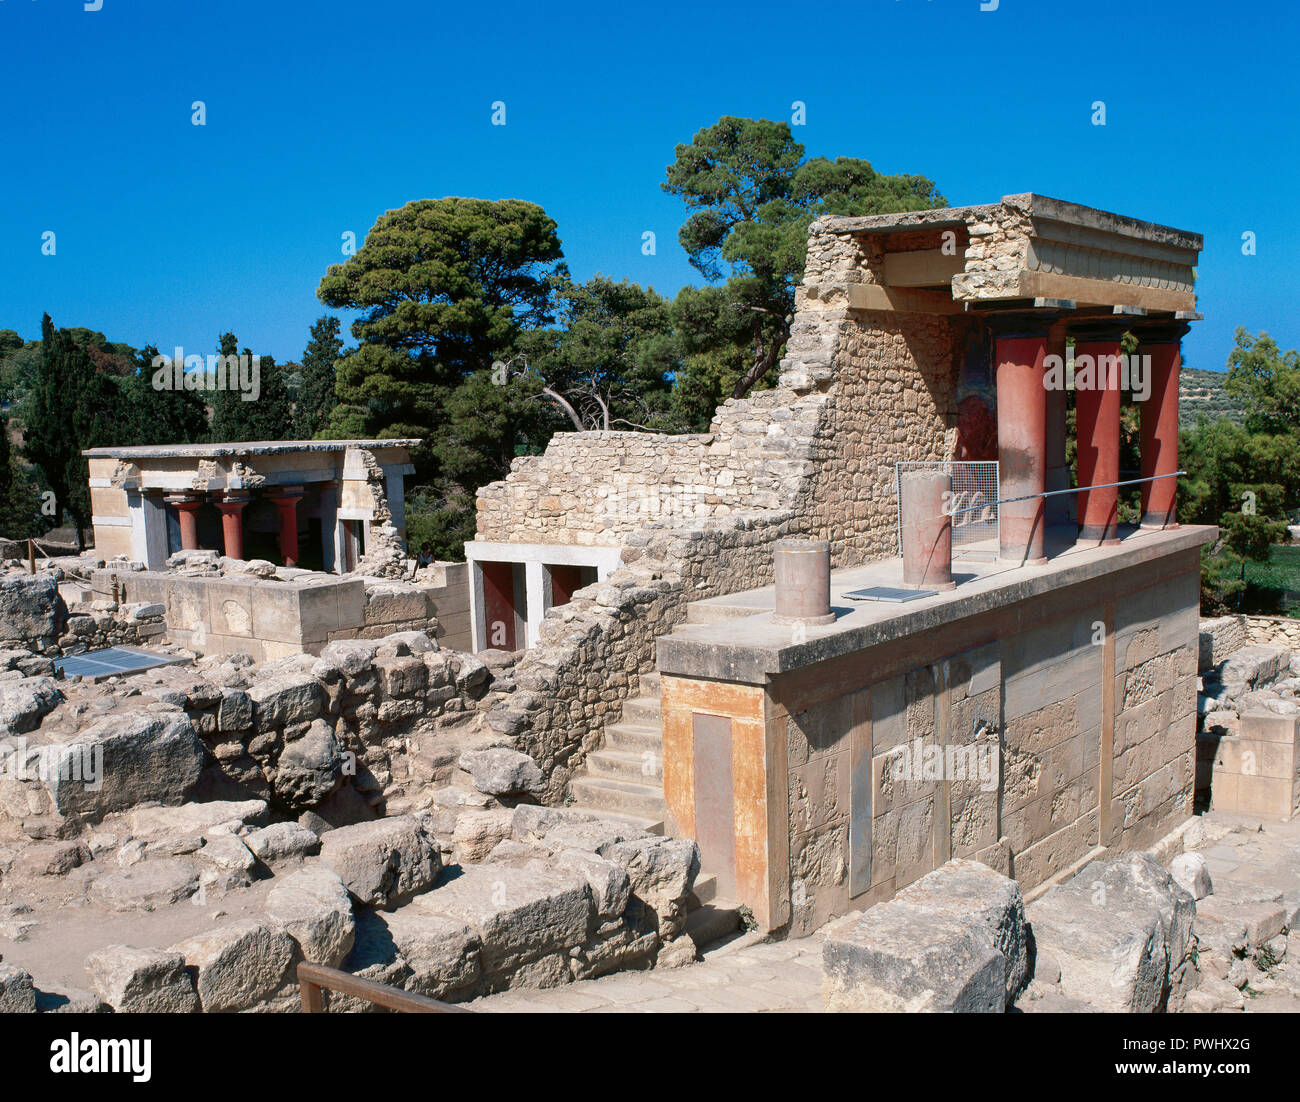 Palace Of Knossos 1700 1450 Bc North Entrance Foreground And